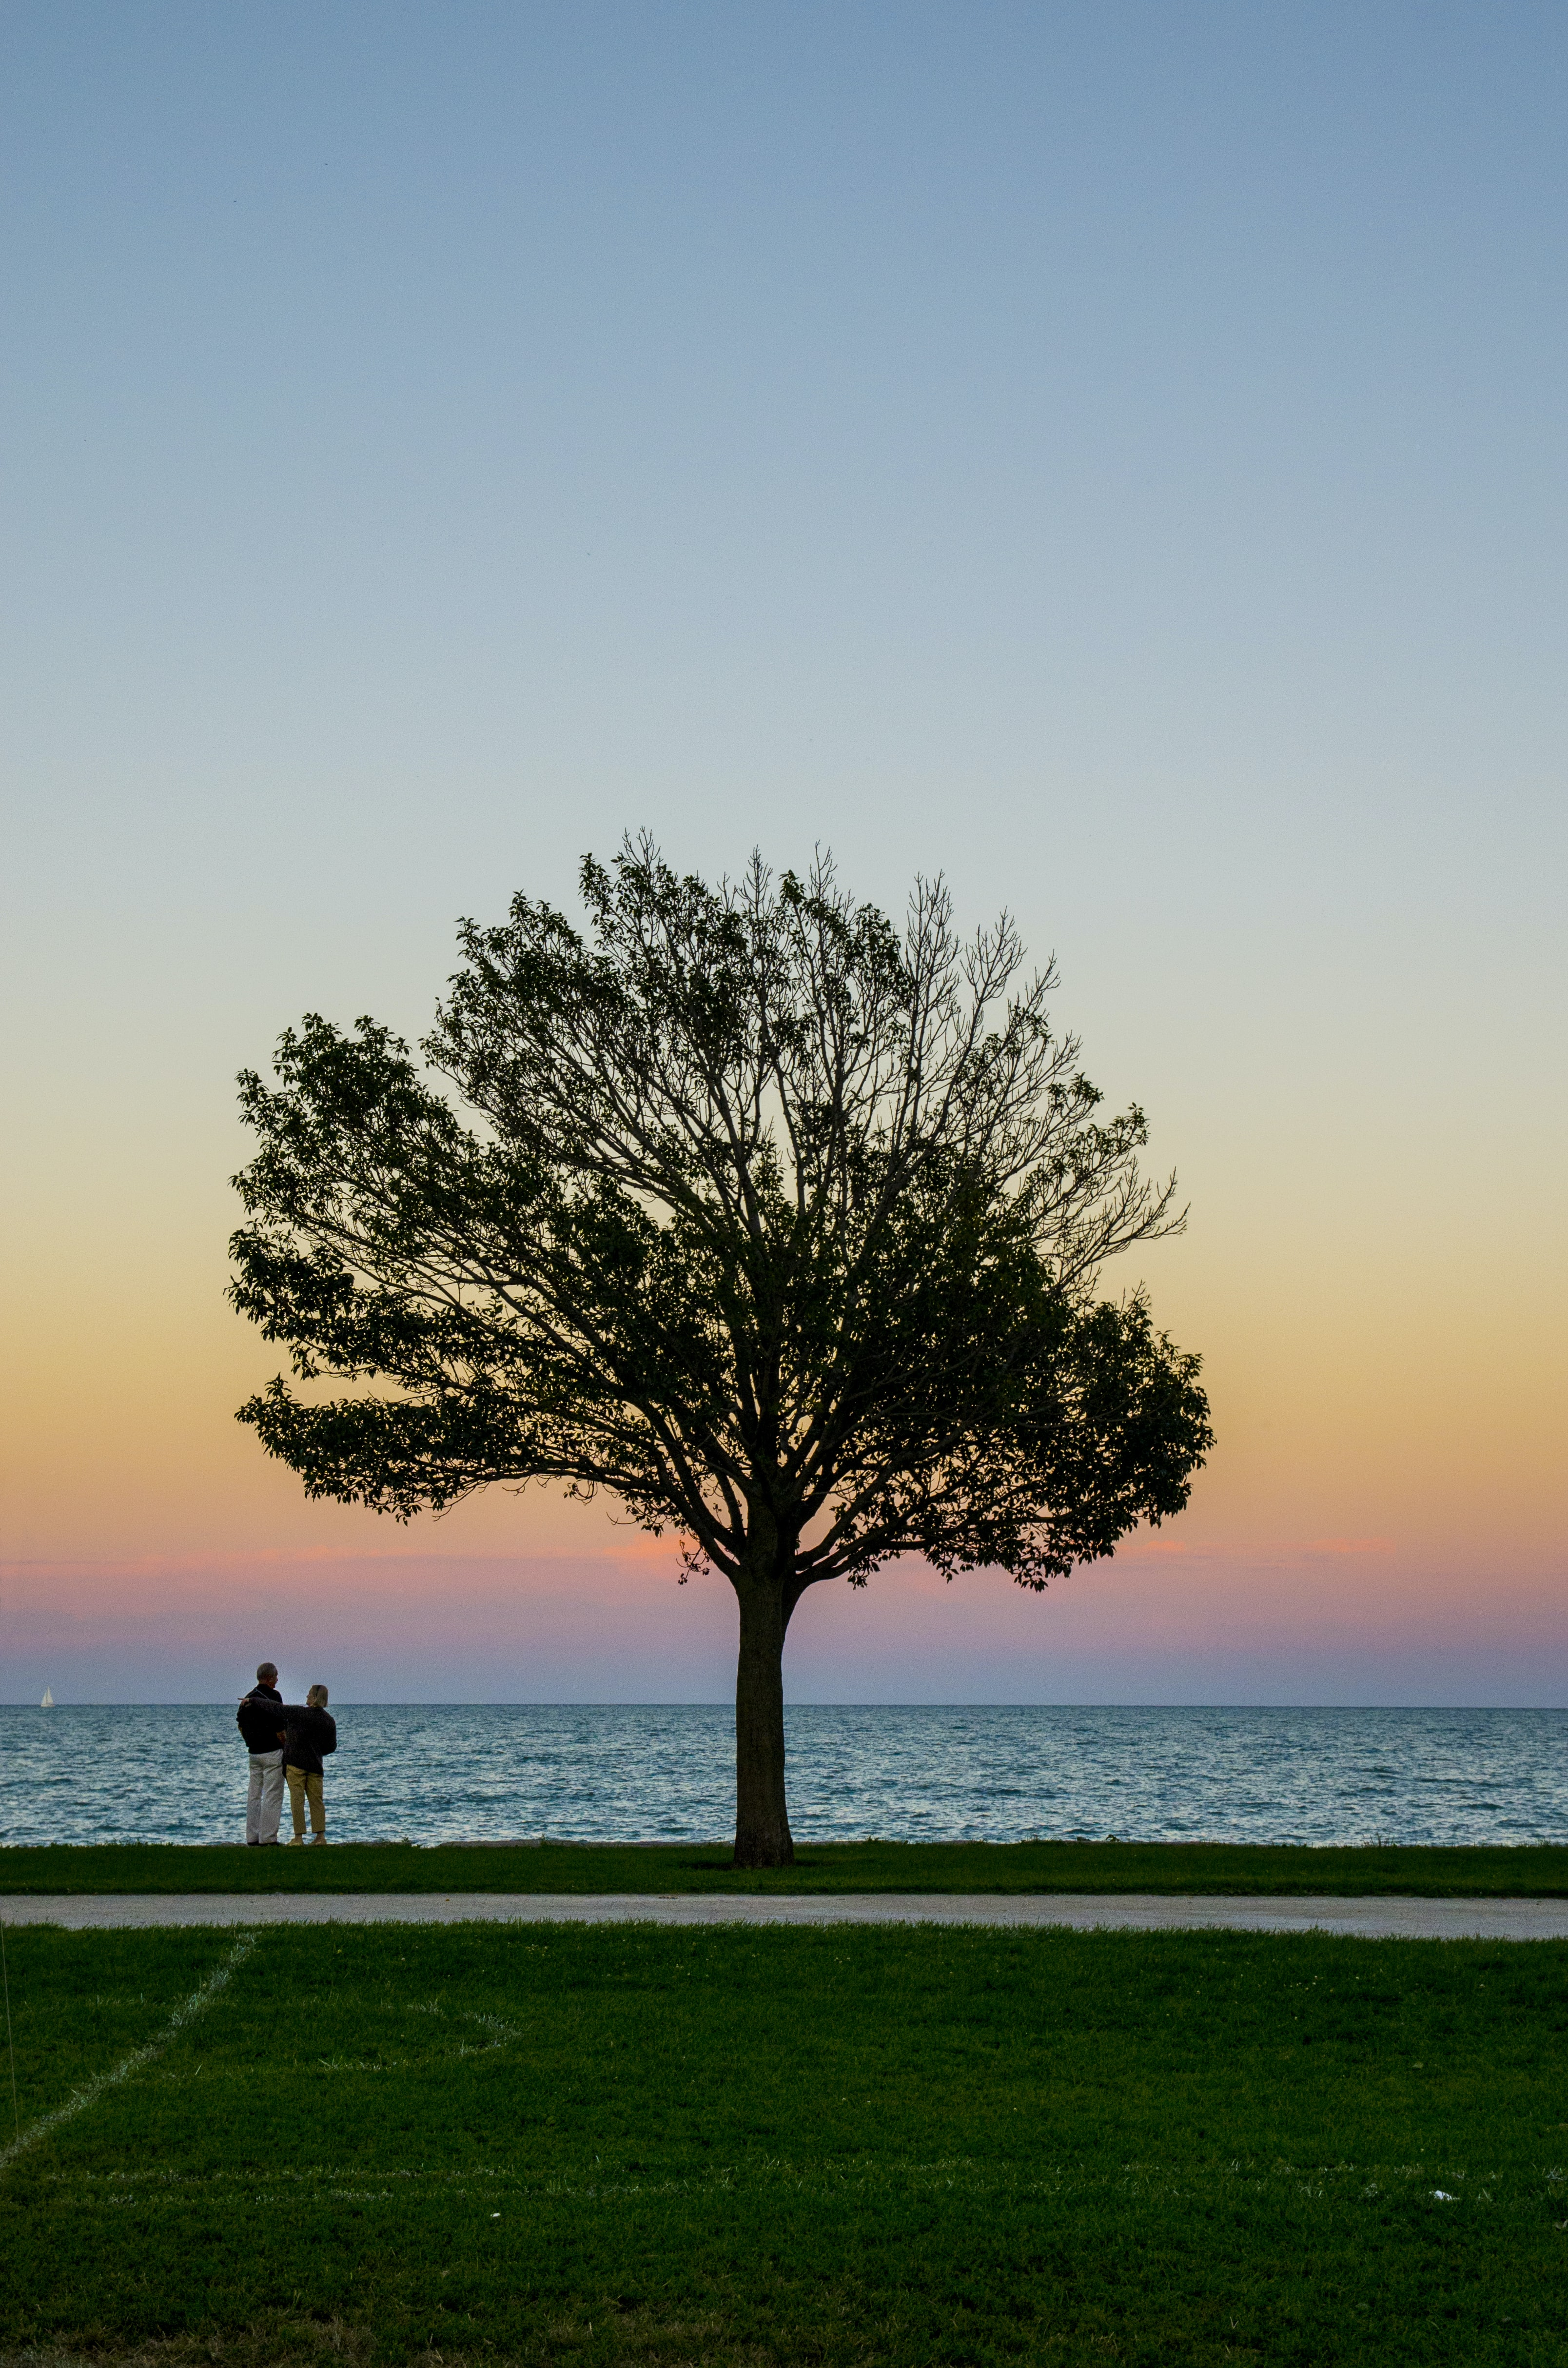 Tree silhouettes against the beach protects lovers who hold each other close